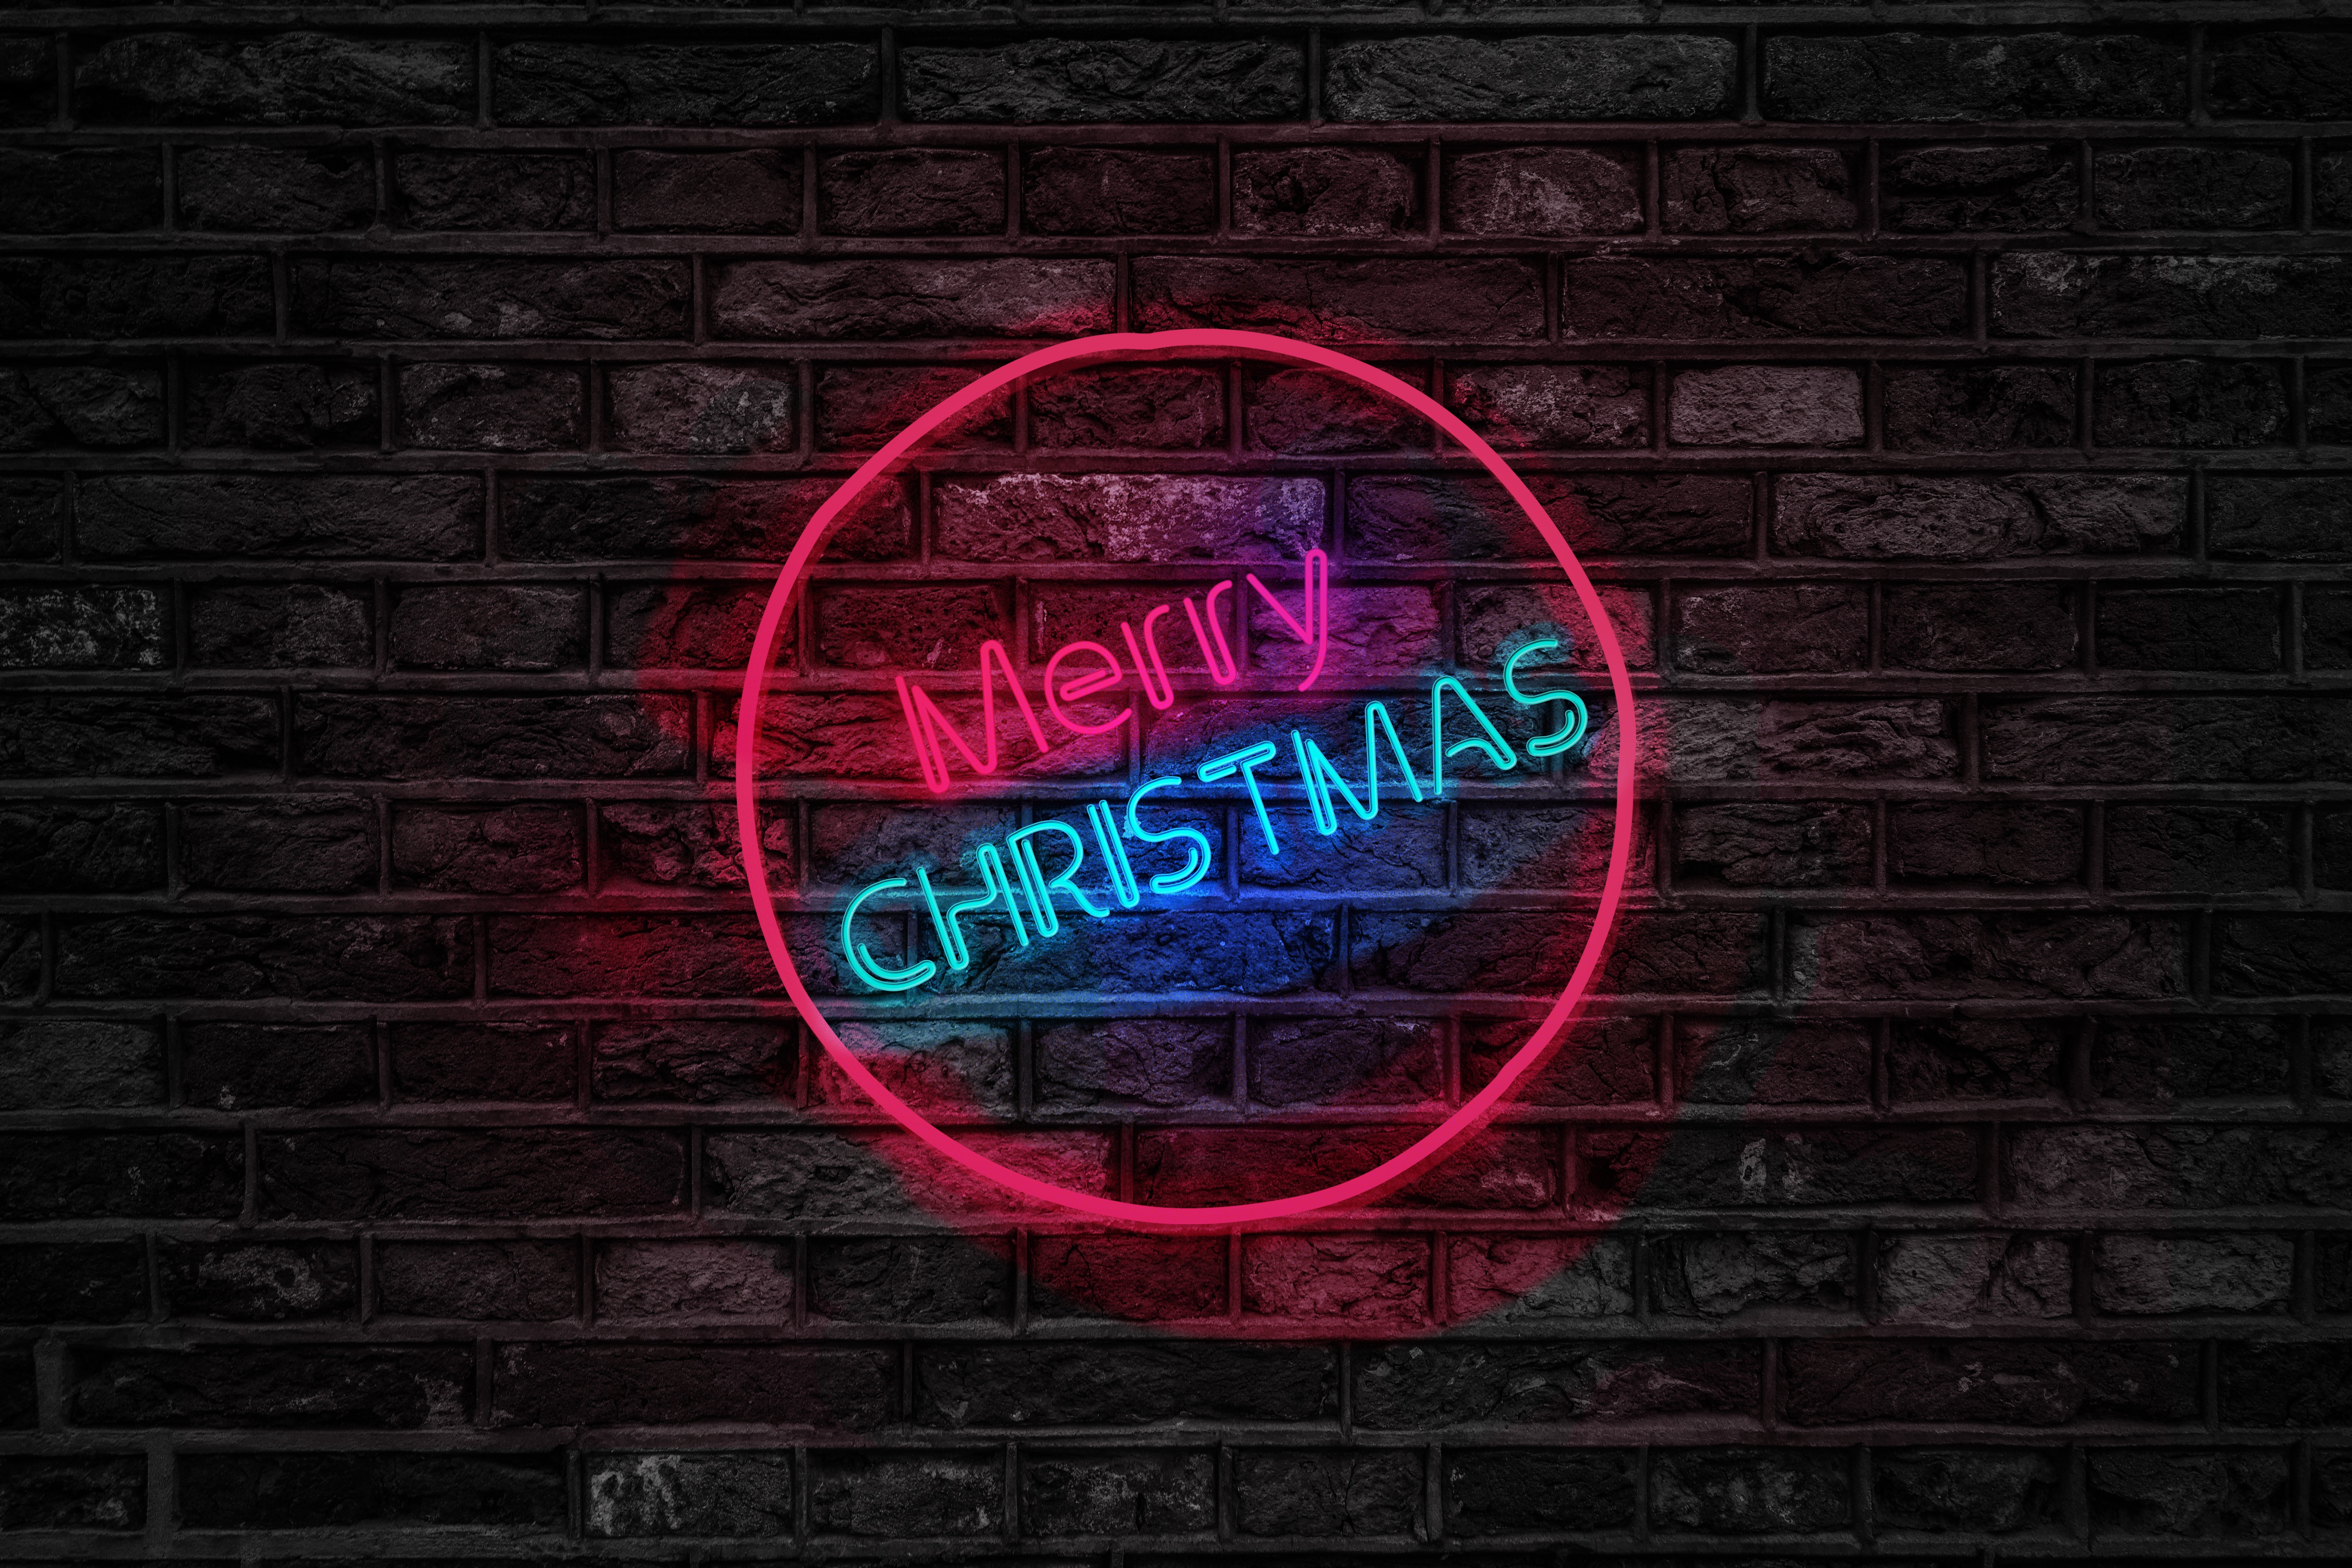 Turned on red and blue merry christmas neon sign photo